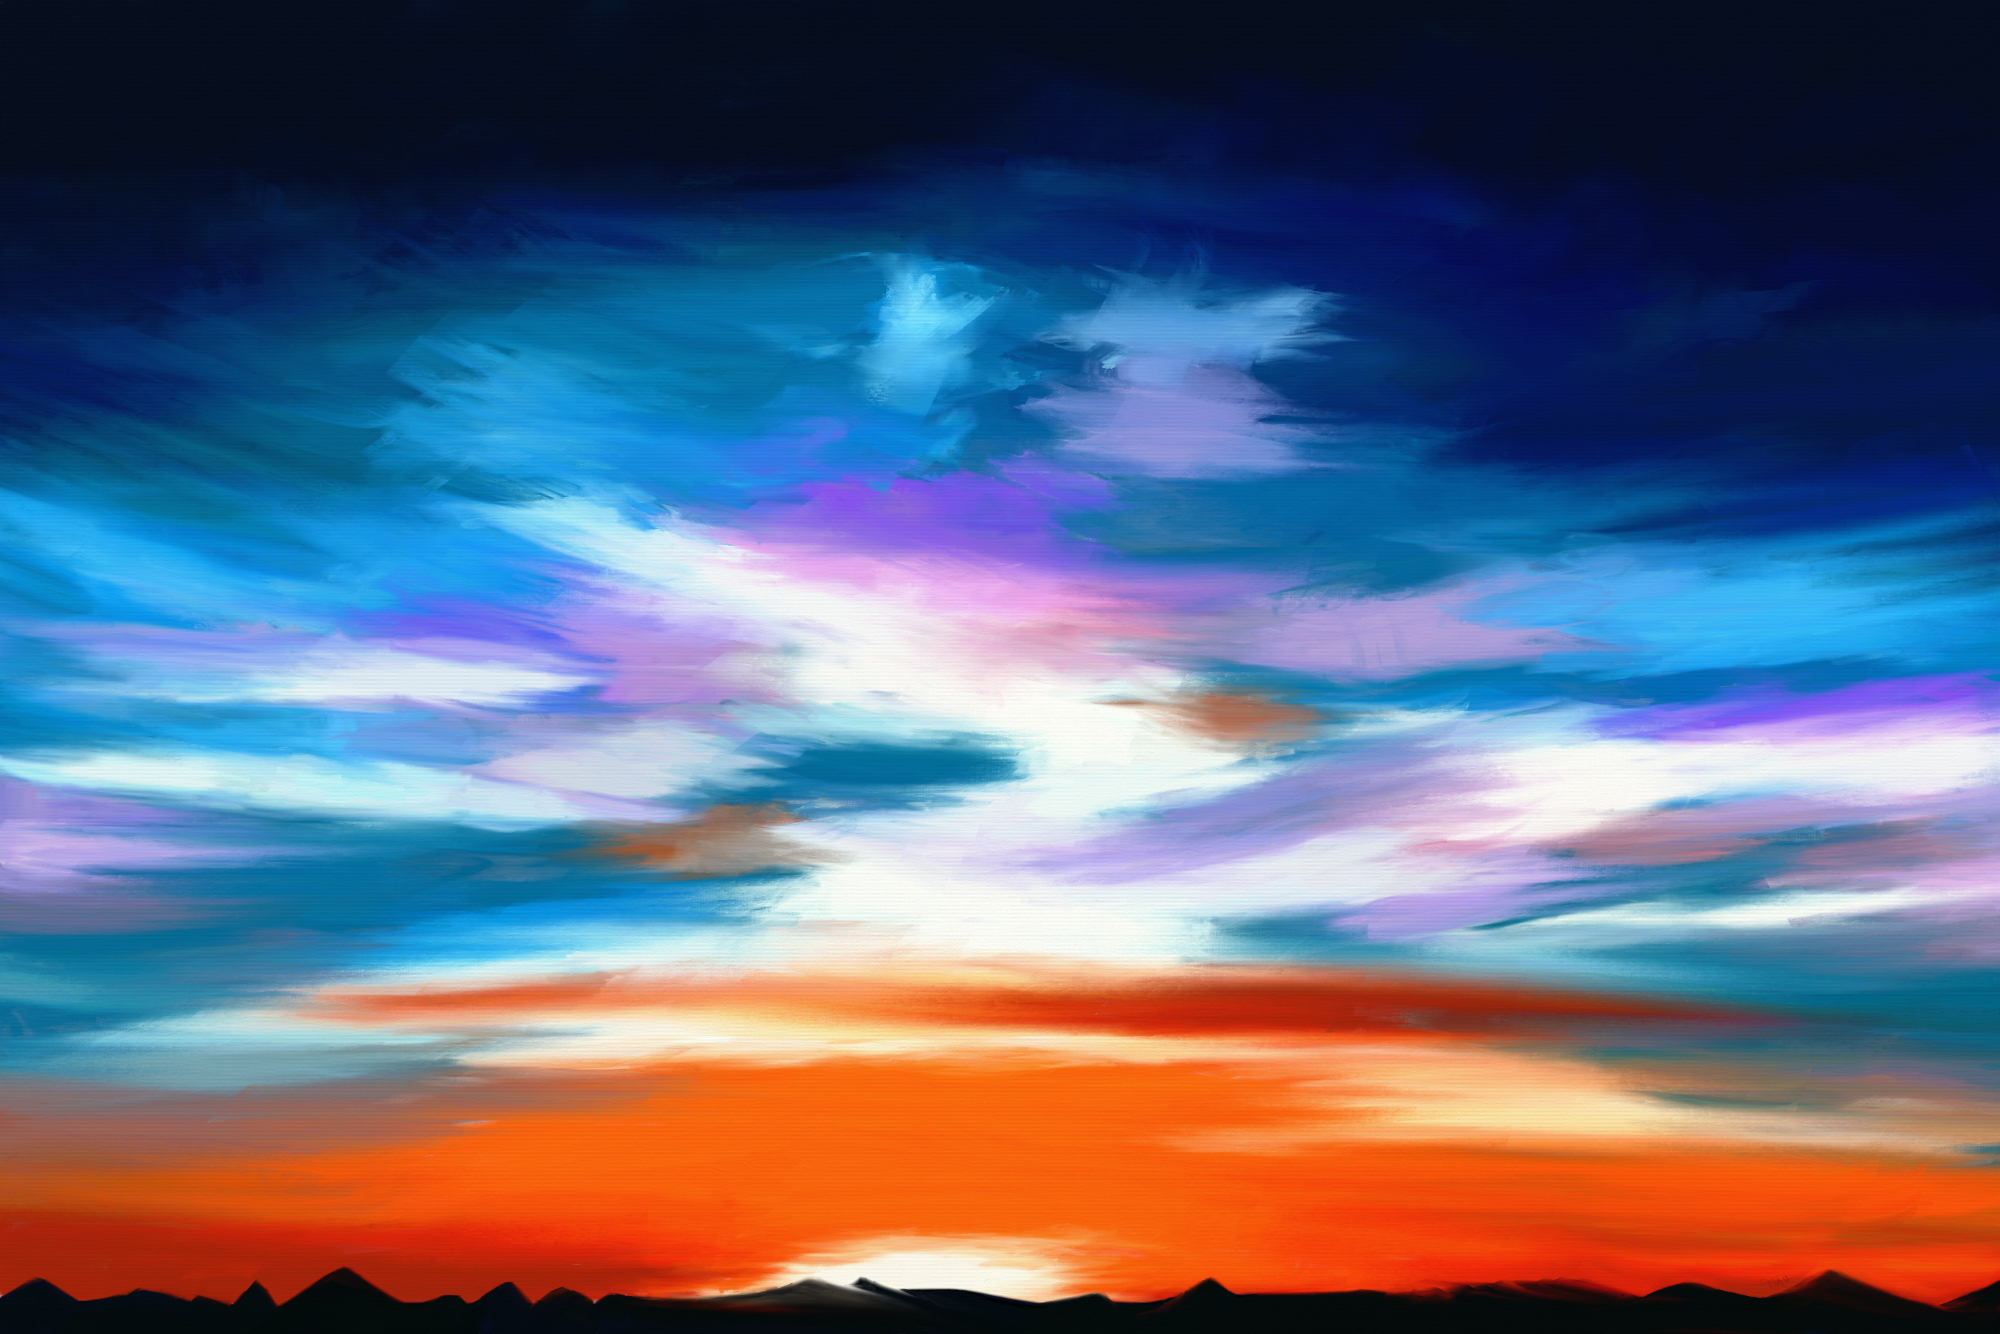 Digital painting of a landscape at sunset with an orange horizon